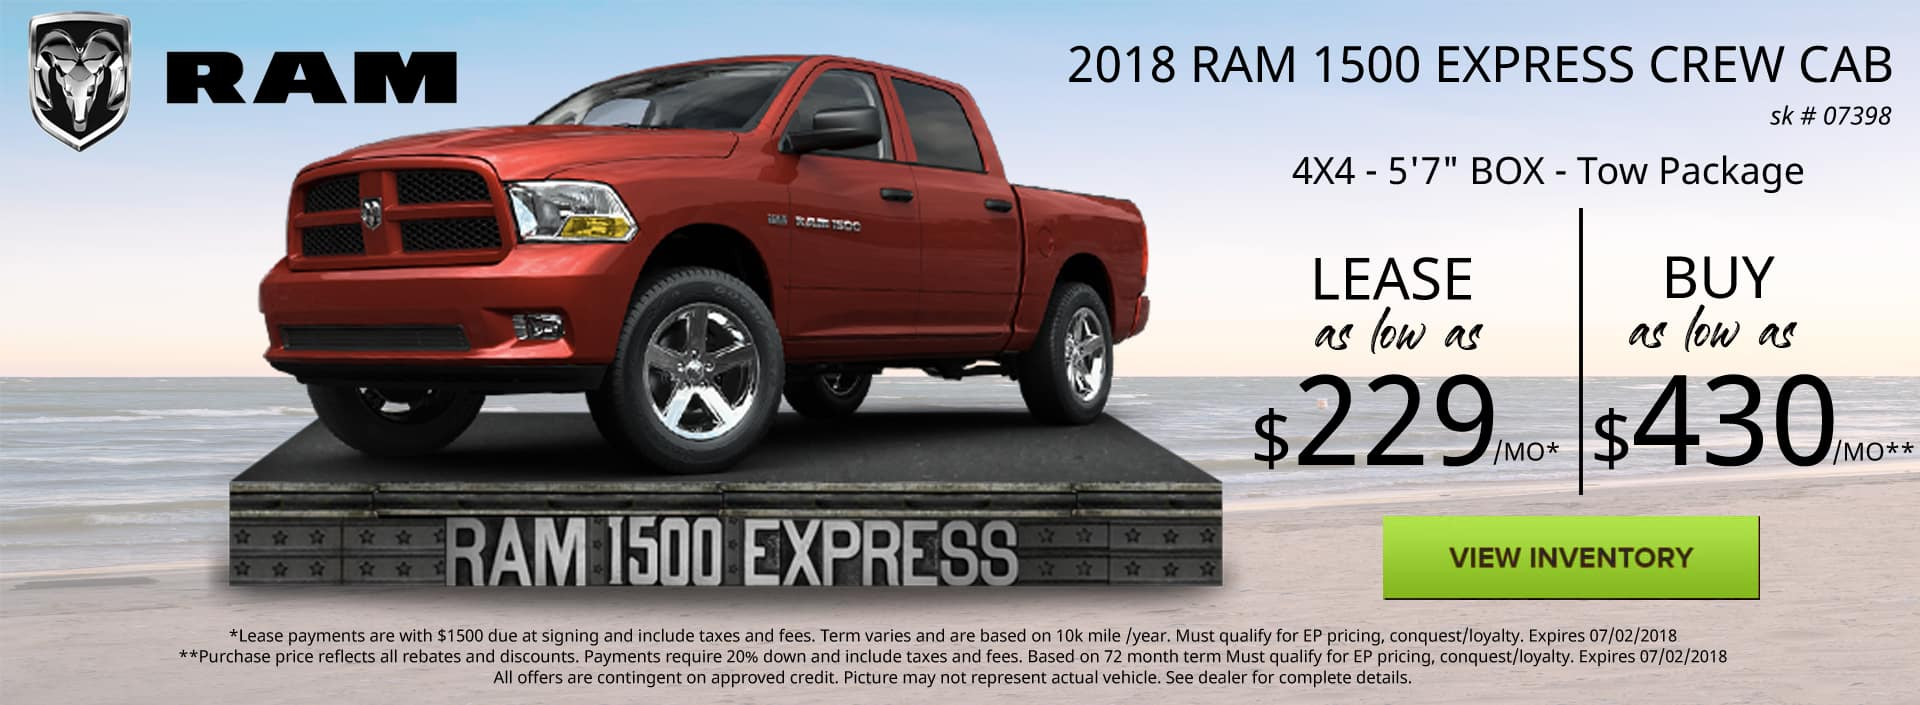 June 2018 Special Ram 1500 Express Special Discount